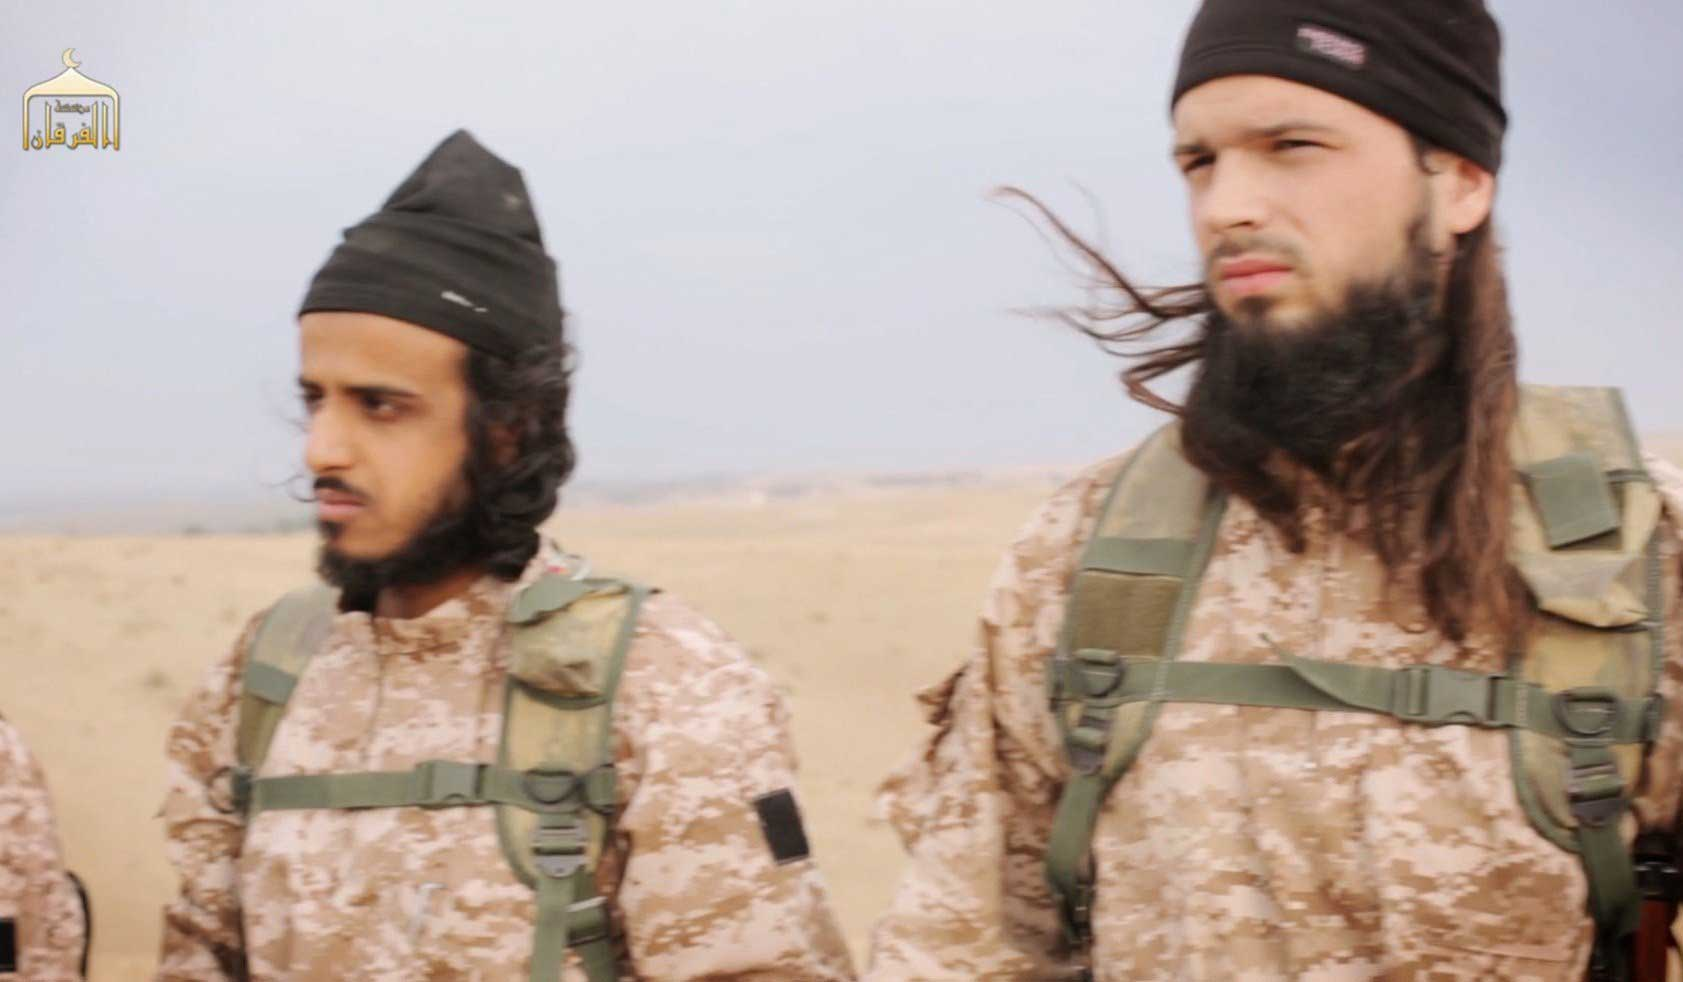 A frame grab from a propaganda video released on Nov. 16, 2014 shows members of The Islamic State in Iraq and Syria, with among them French citizen Maxime Hauchard, before taking part in the beheadings of Syrian soldiers.